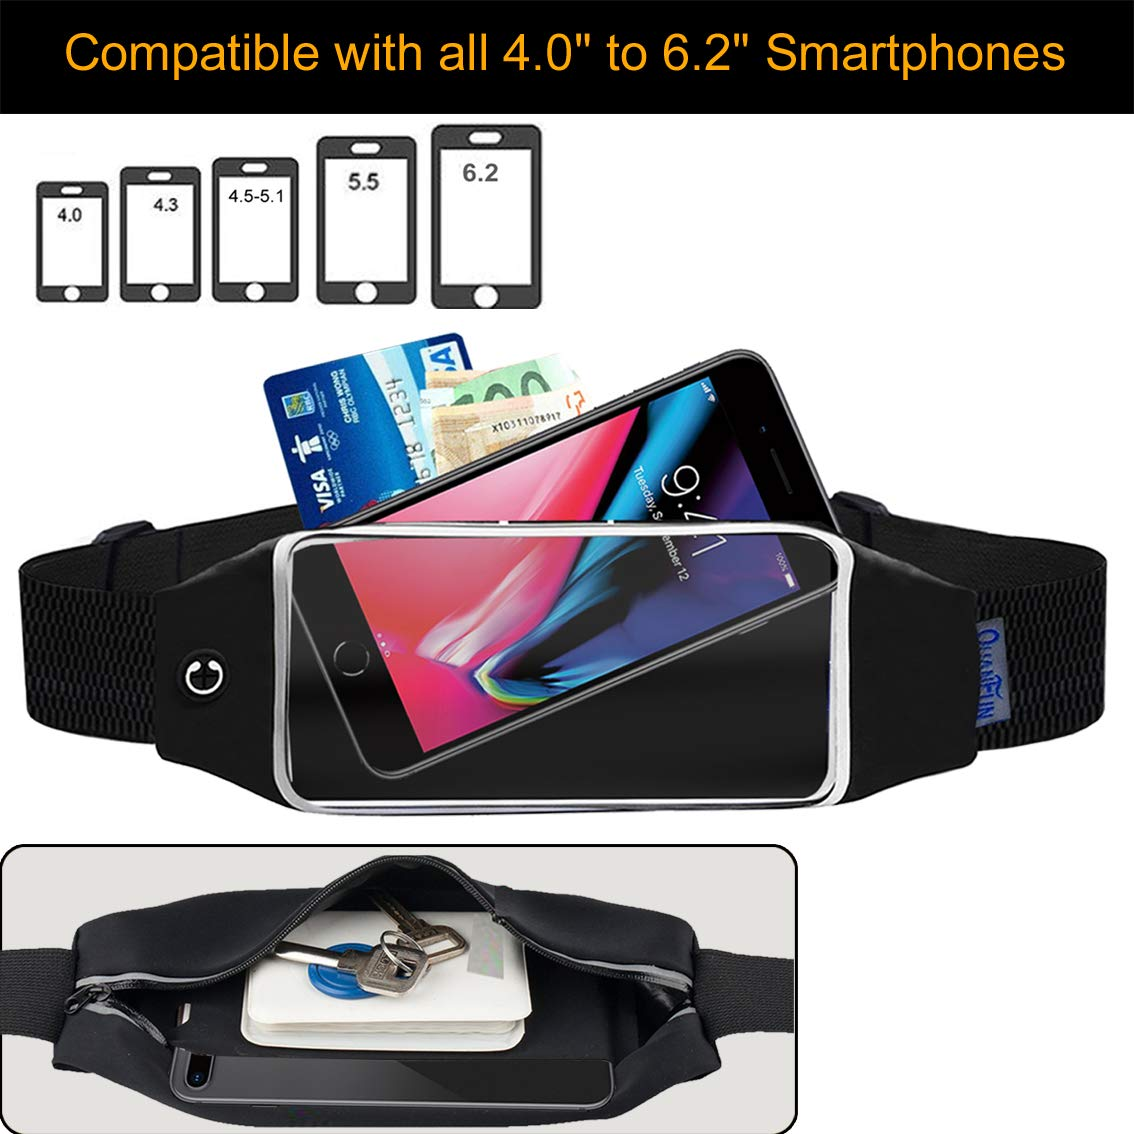 QUANFUN Phone Holder for Running compatibility